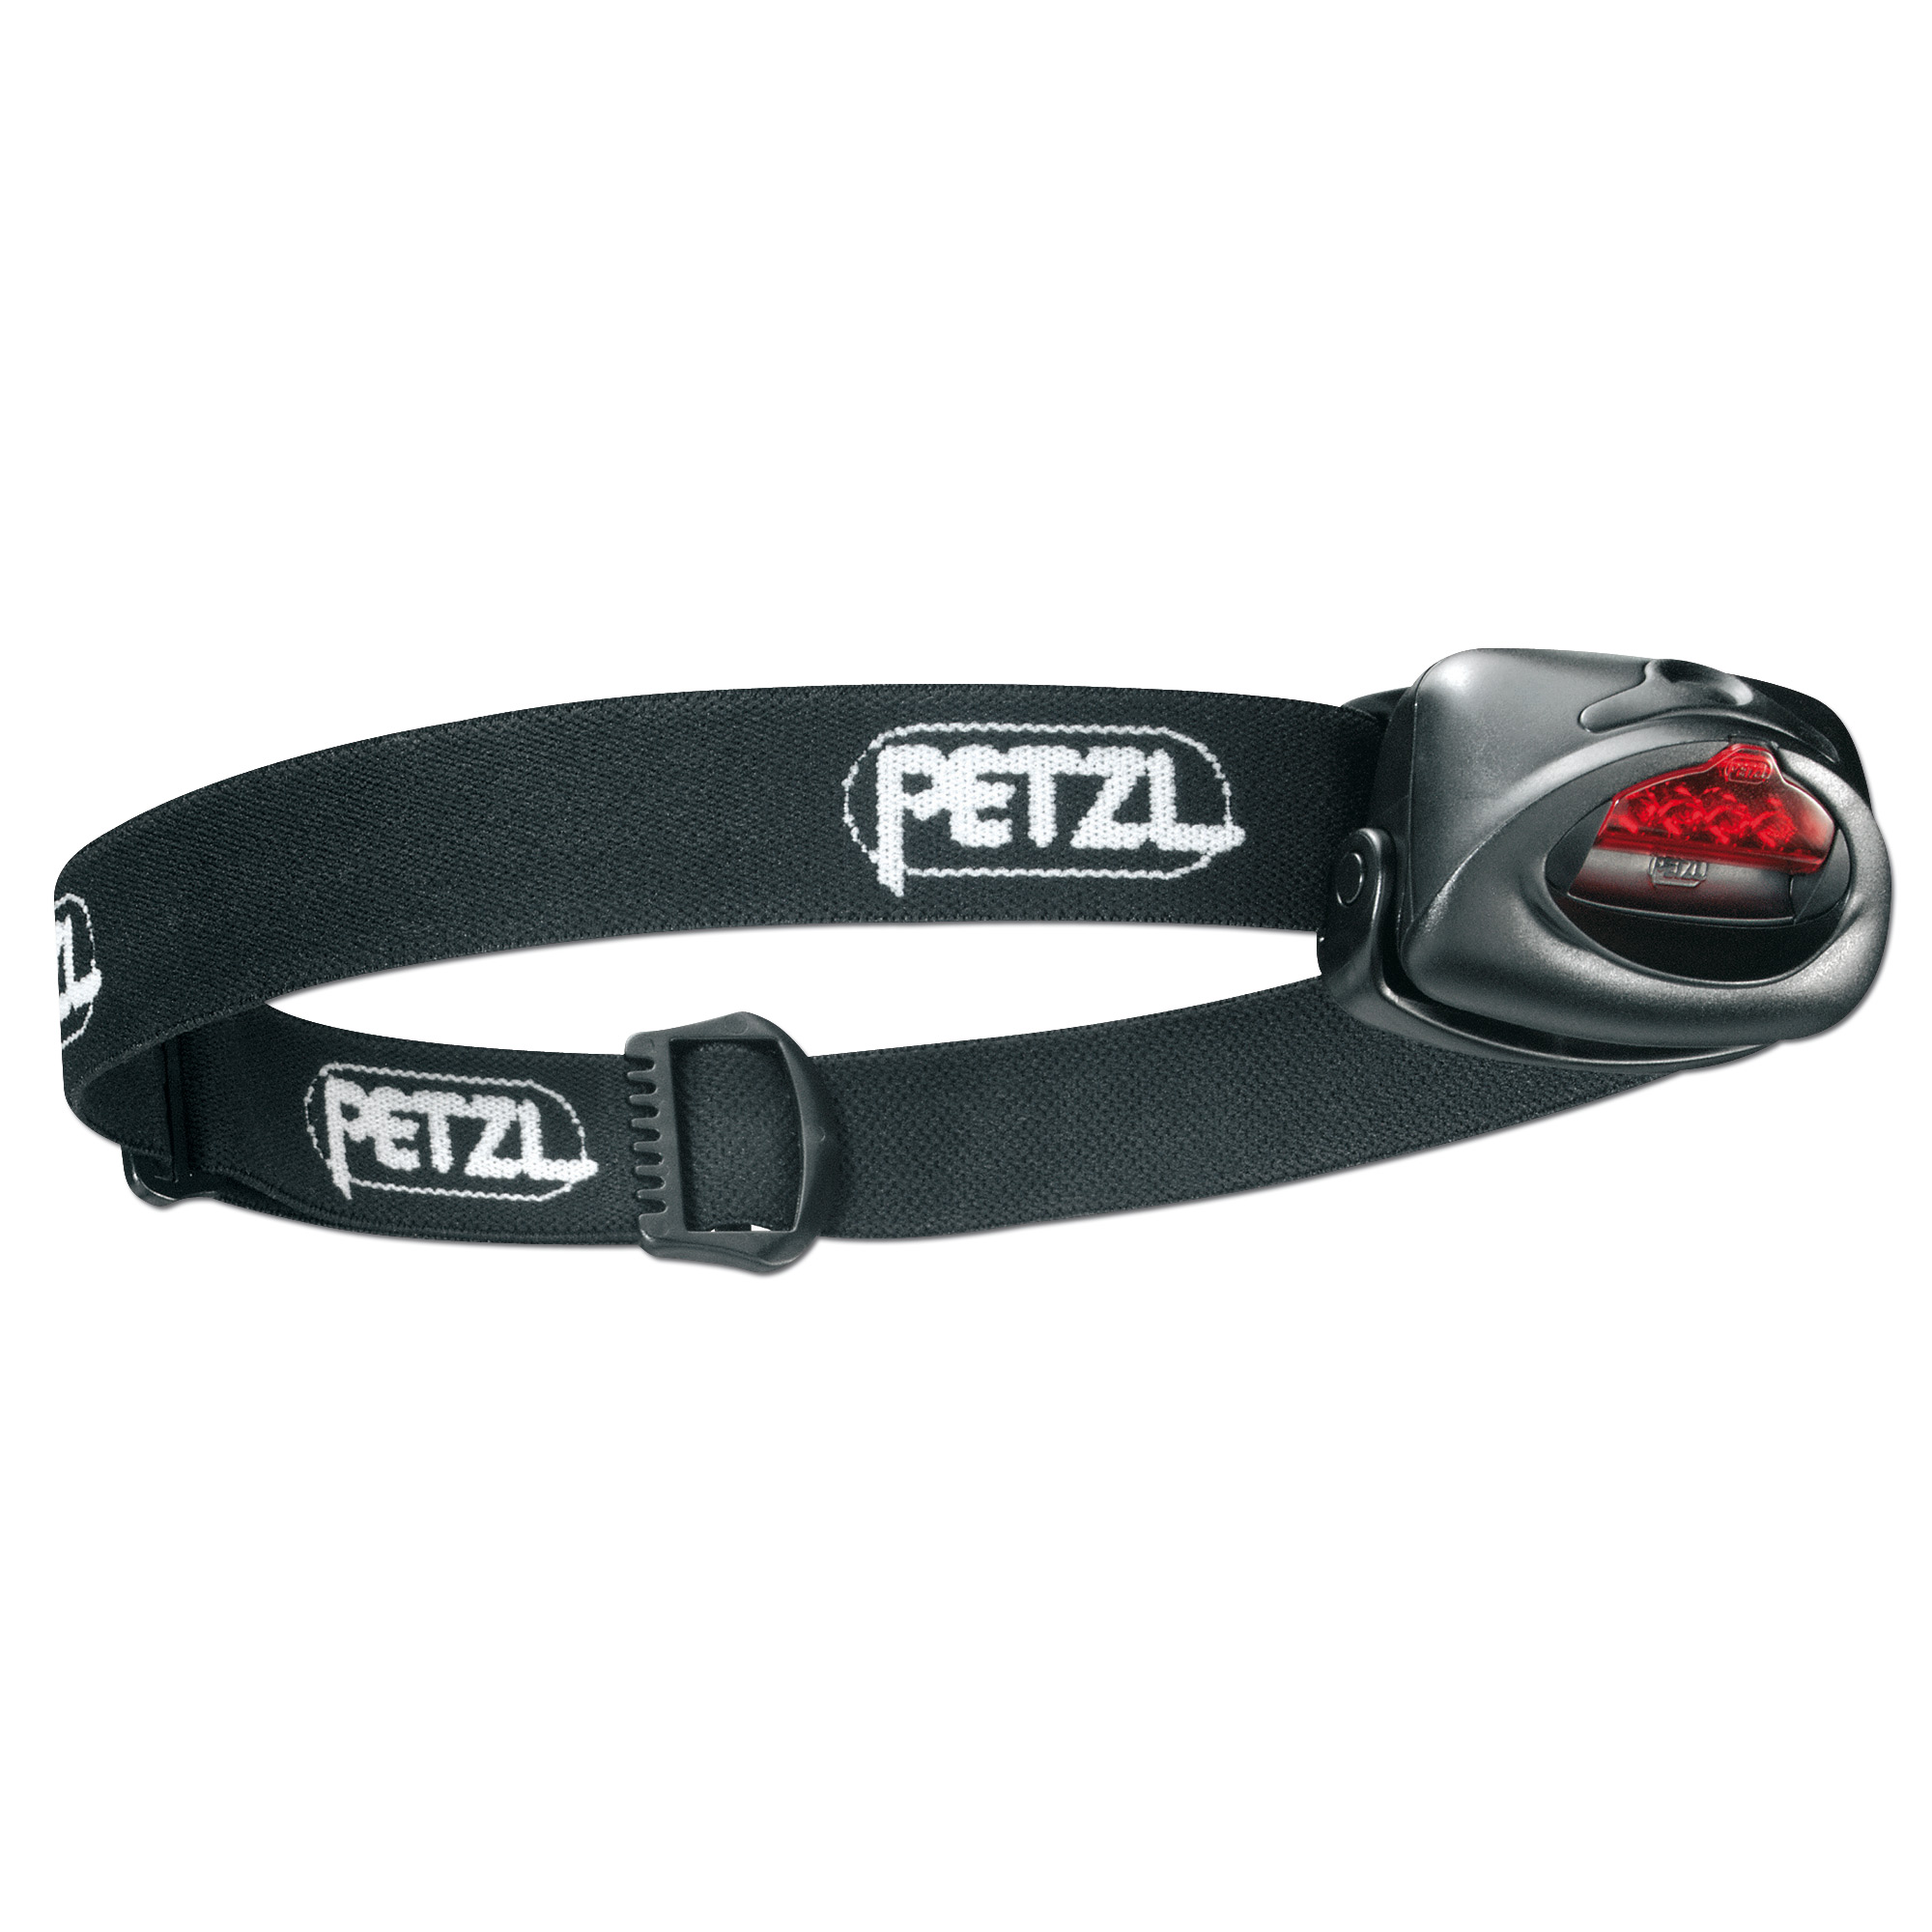 Head Lamp Petzl Tactikka Plus